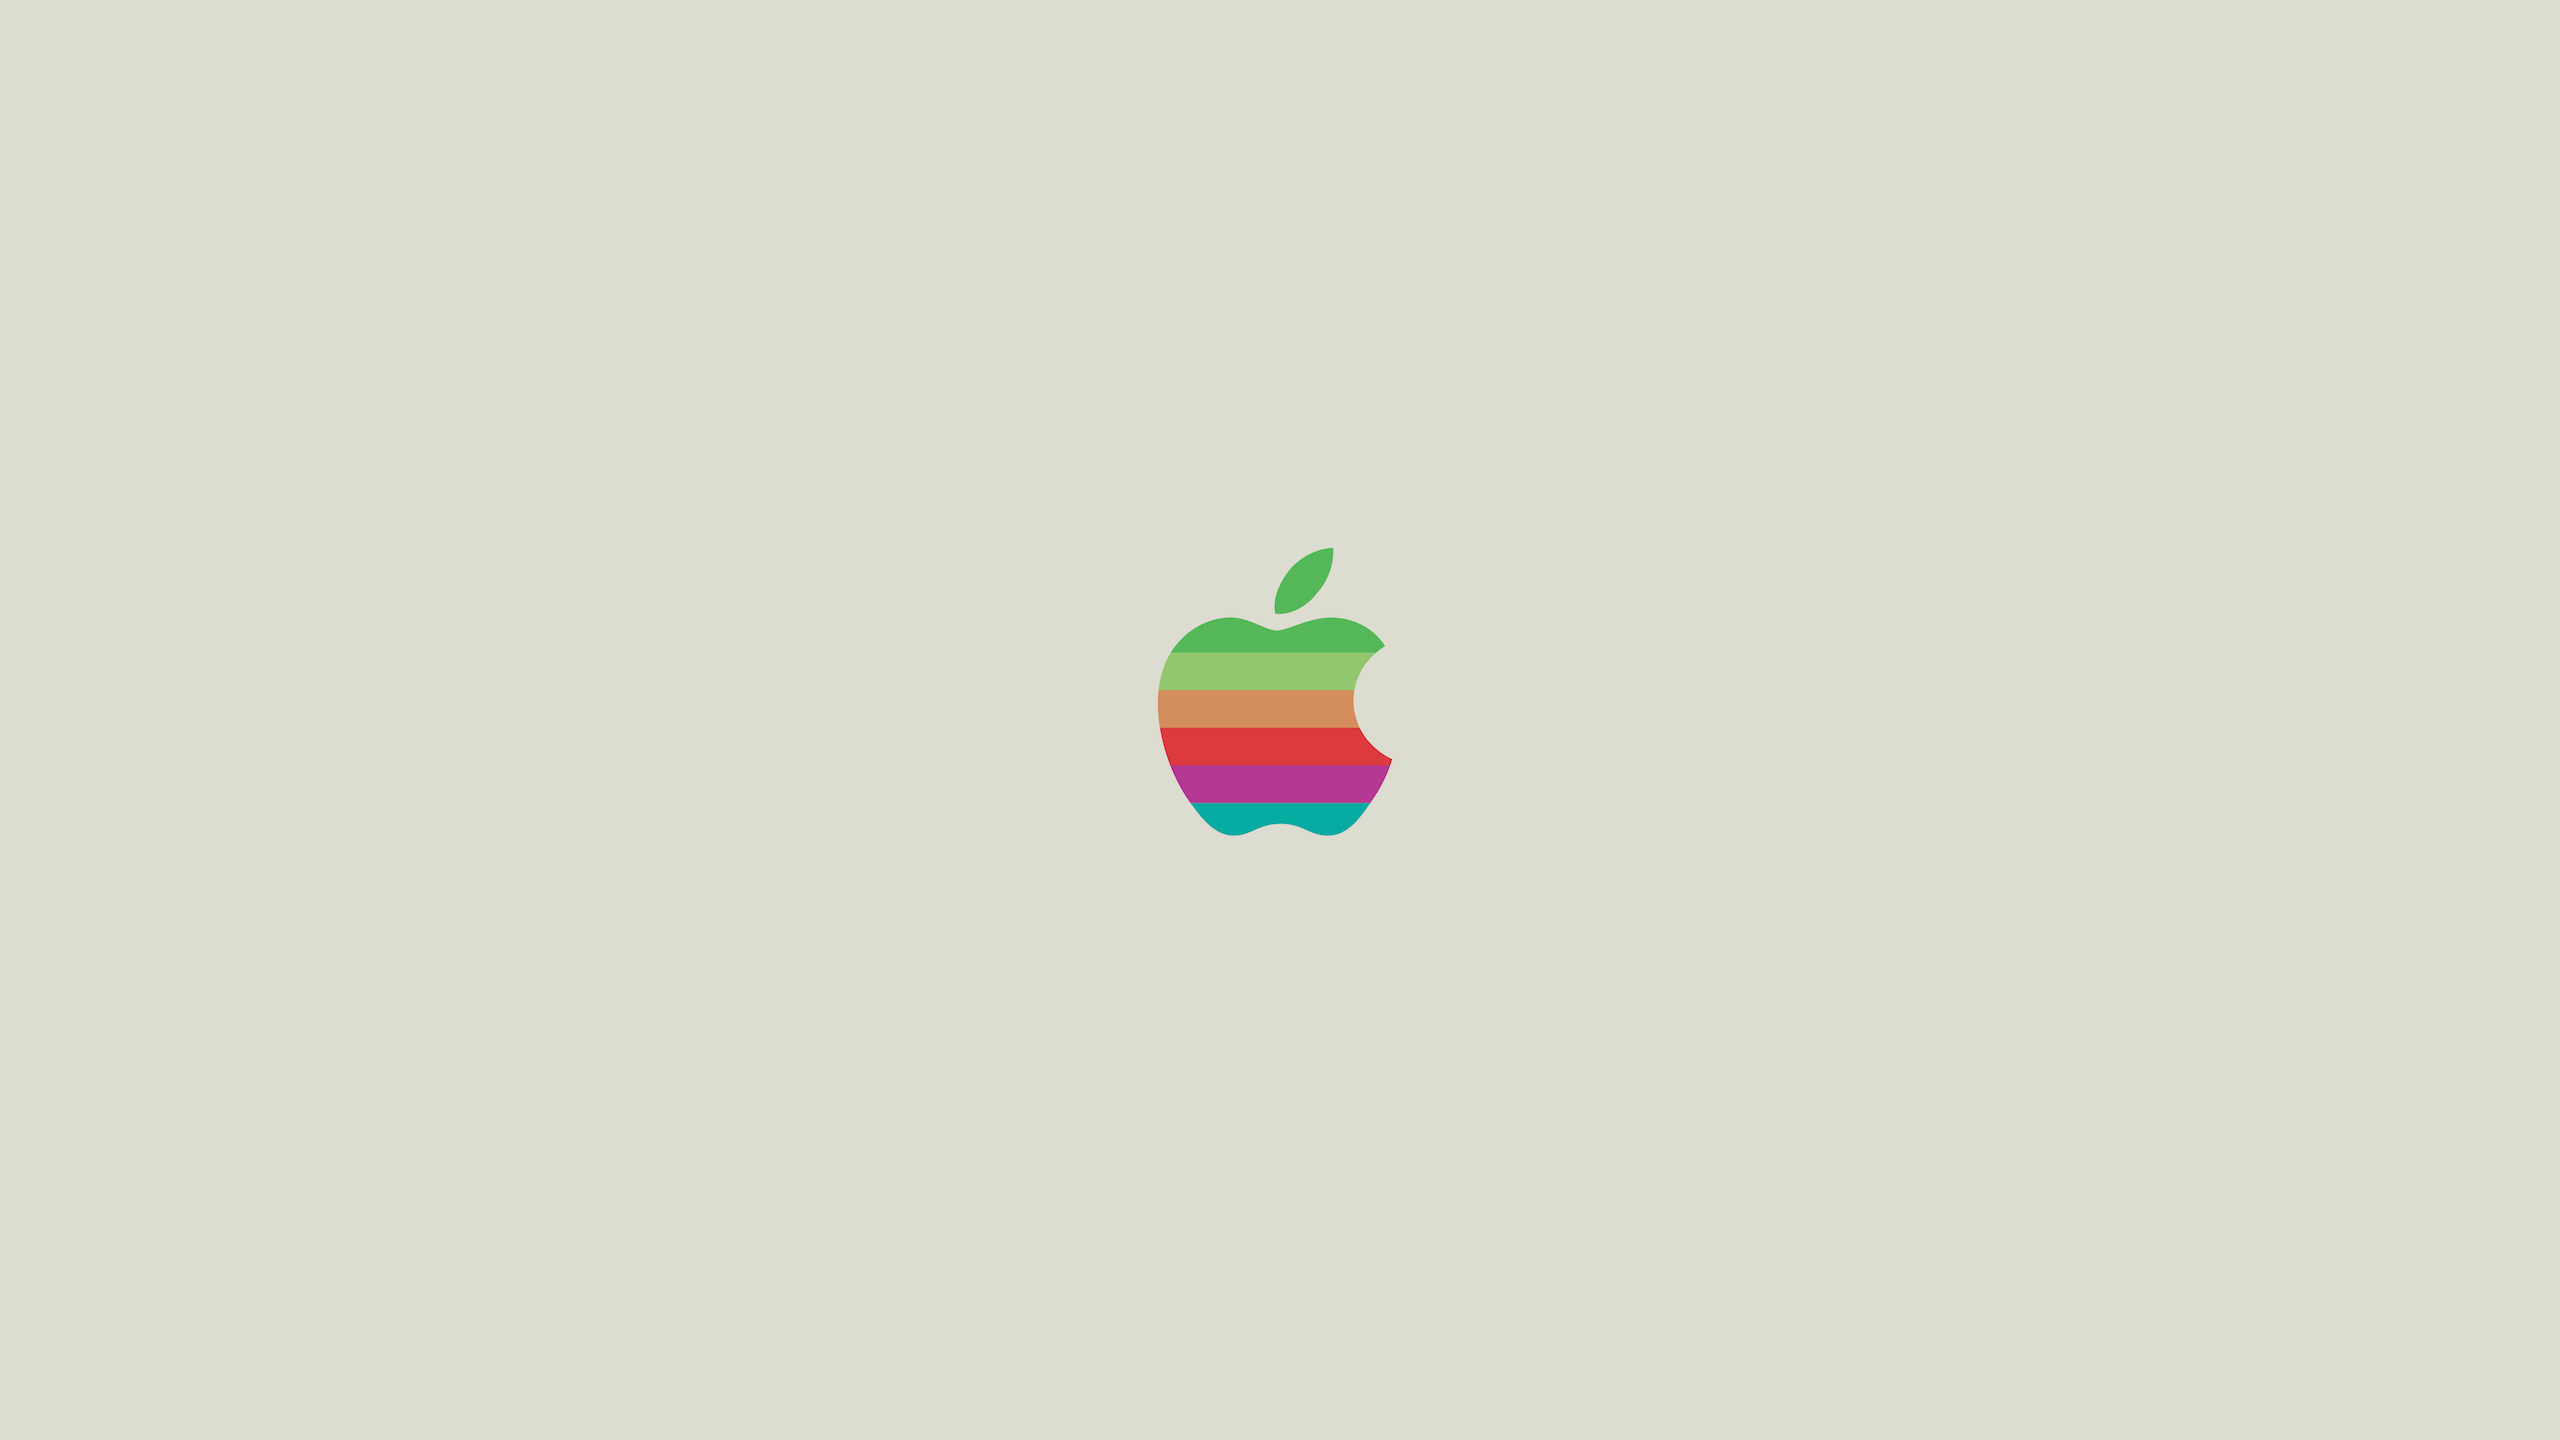 More Apple Wallpapers